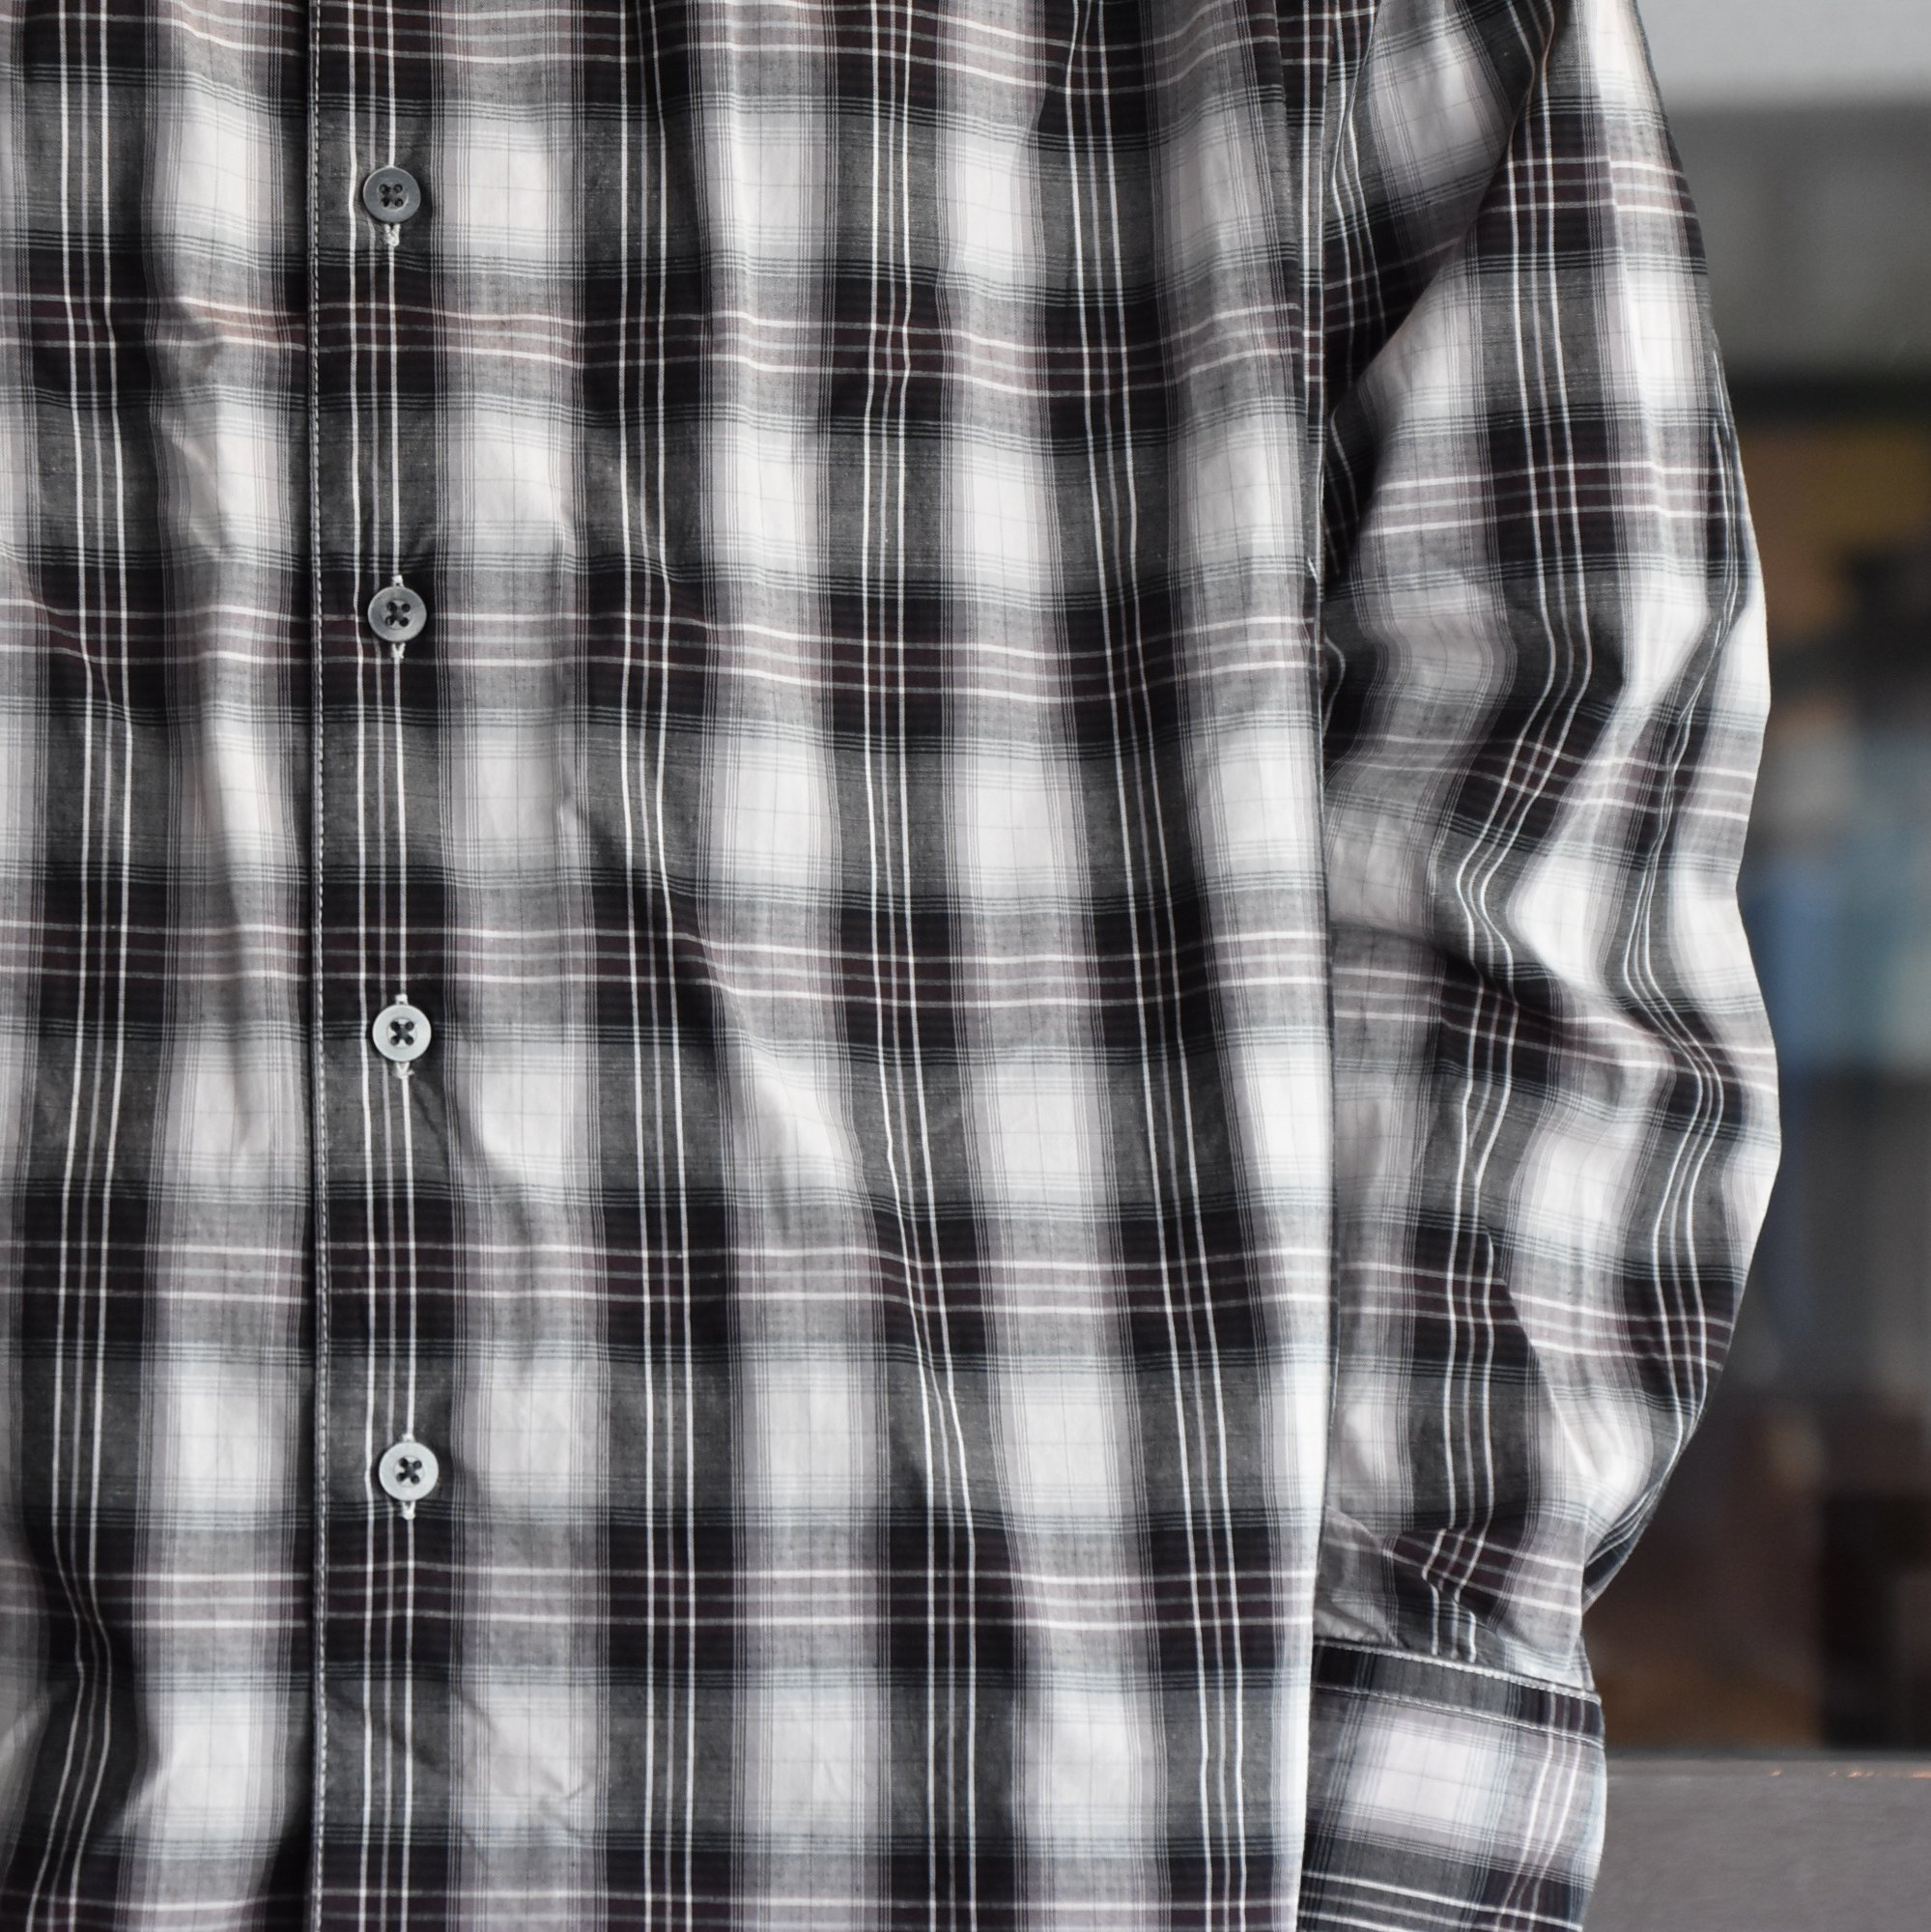 [2021] AiE(エーアイイー)/PAINTER SHIRT-SHADOW PLAID- #IN530(3)